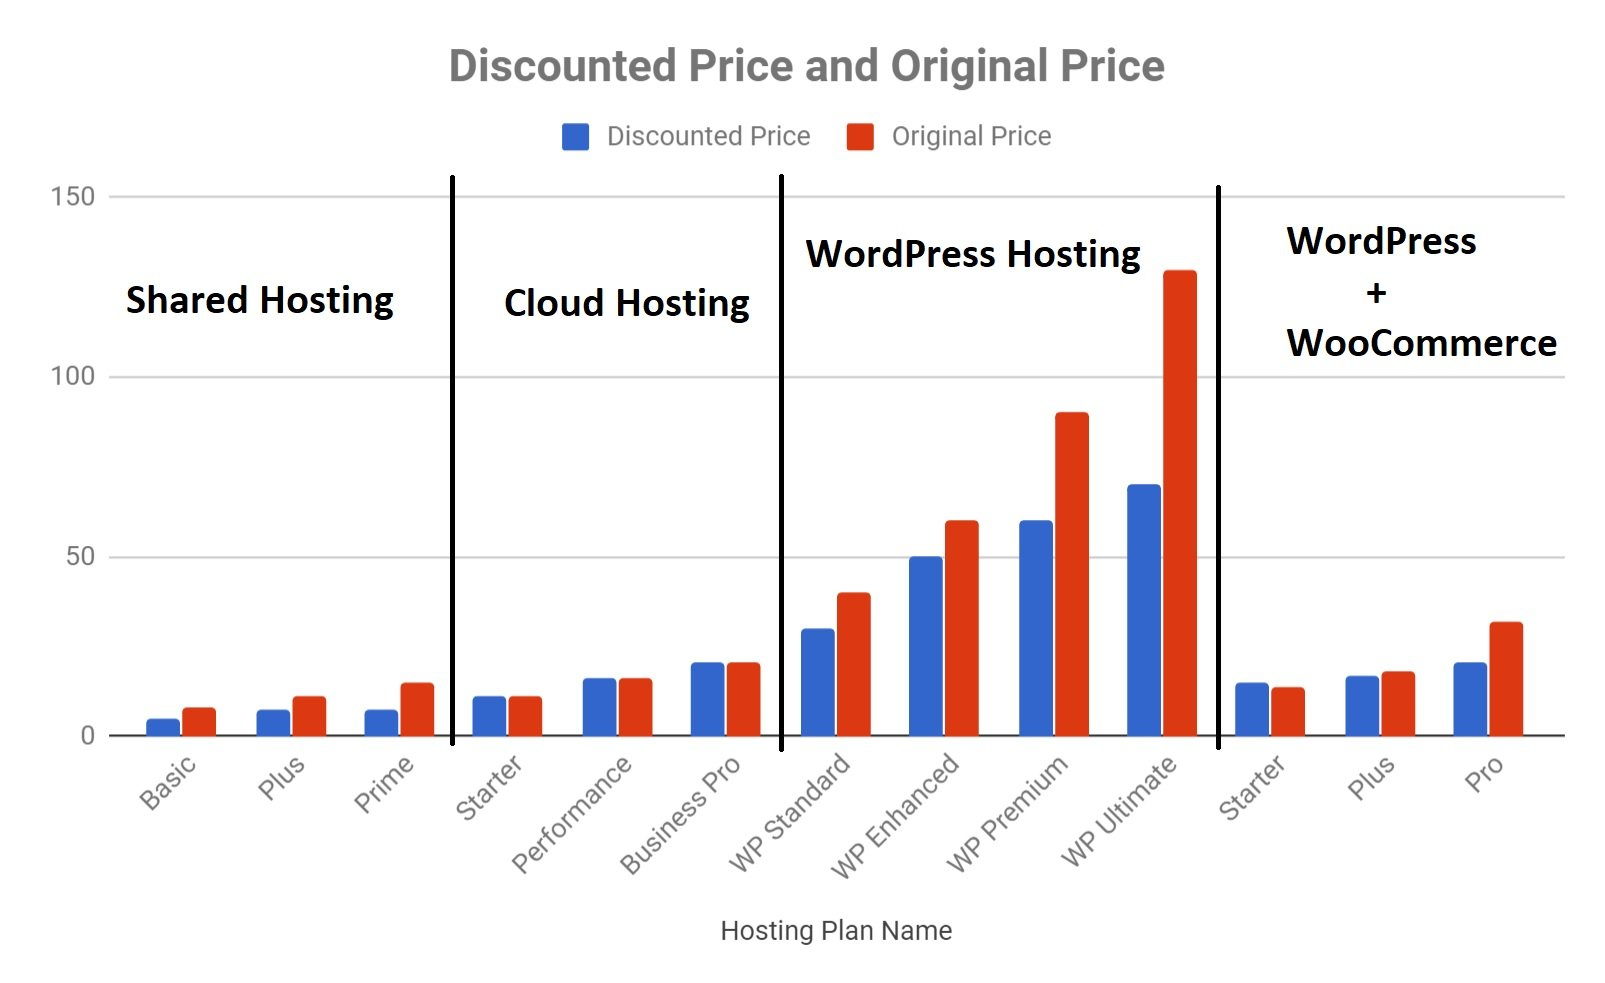 Bluehost Review (2019-20) - Is This Popular Web Host Any Good?